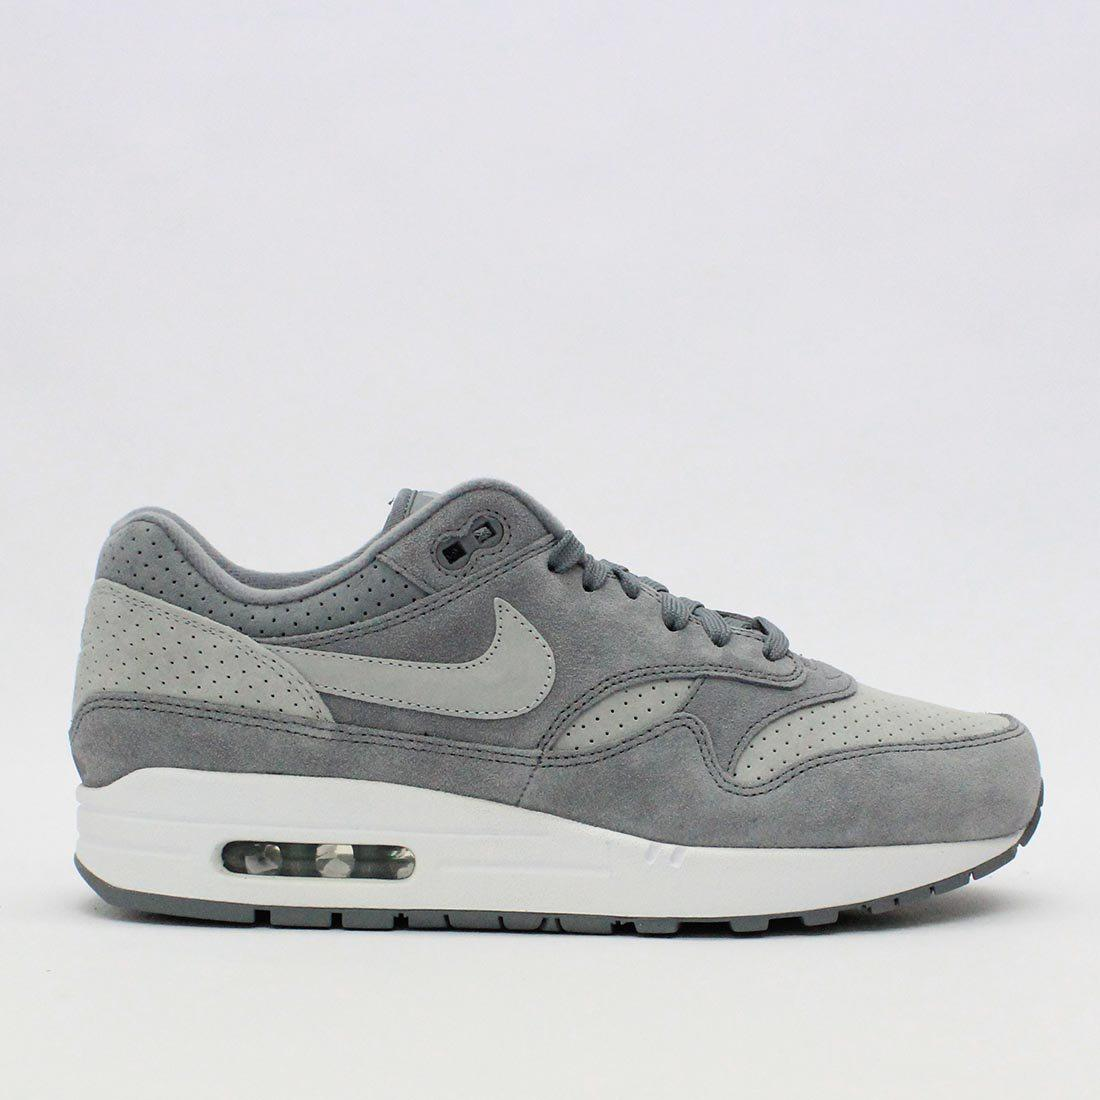 ef8d0bfcad9 Lyst - Nike Trainers Nike Air Max 1 Premium Cool Grey 875844 005 in ...